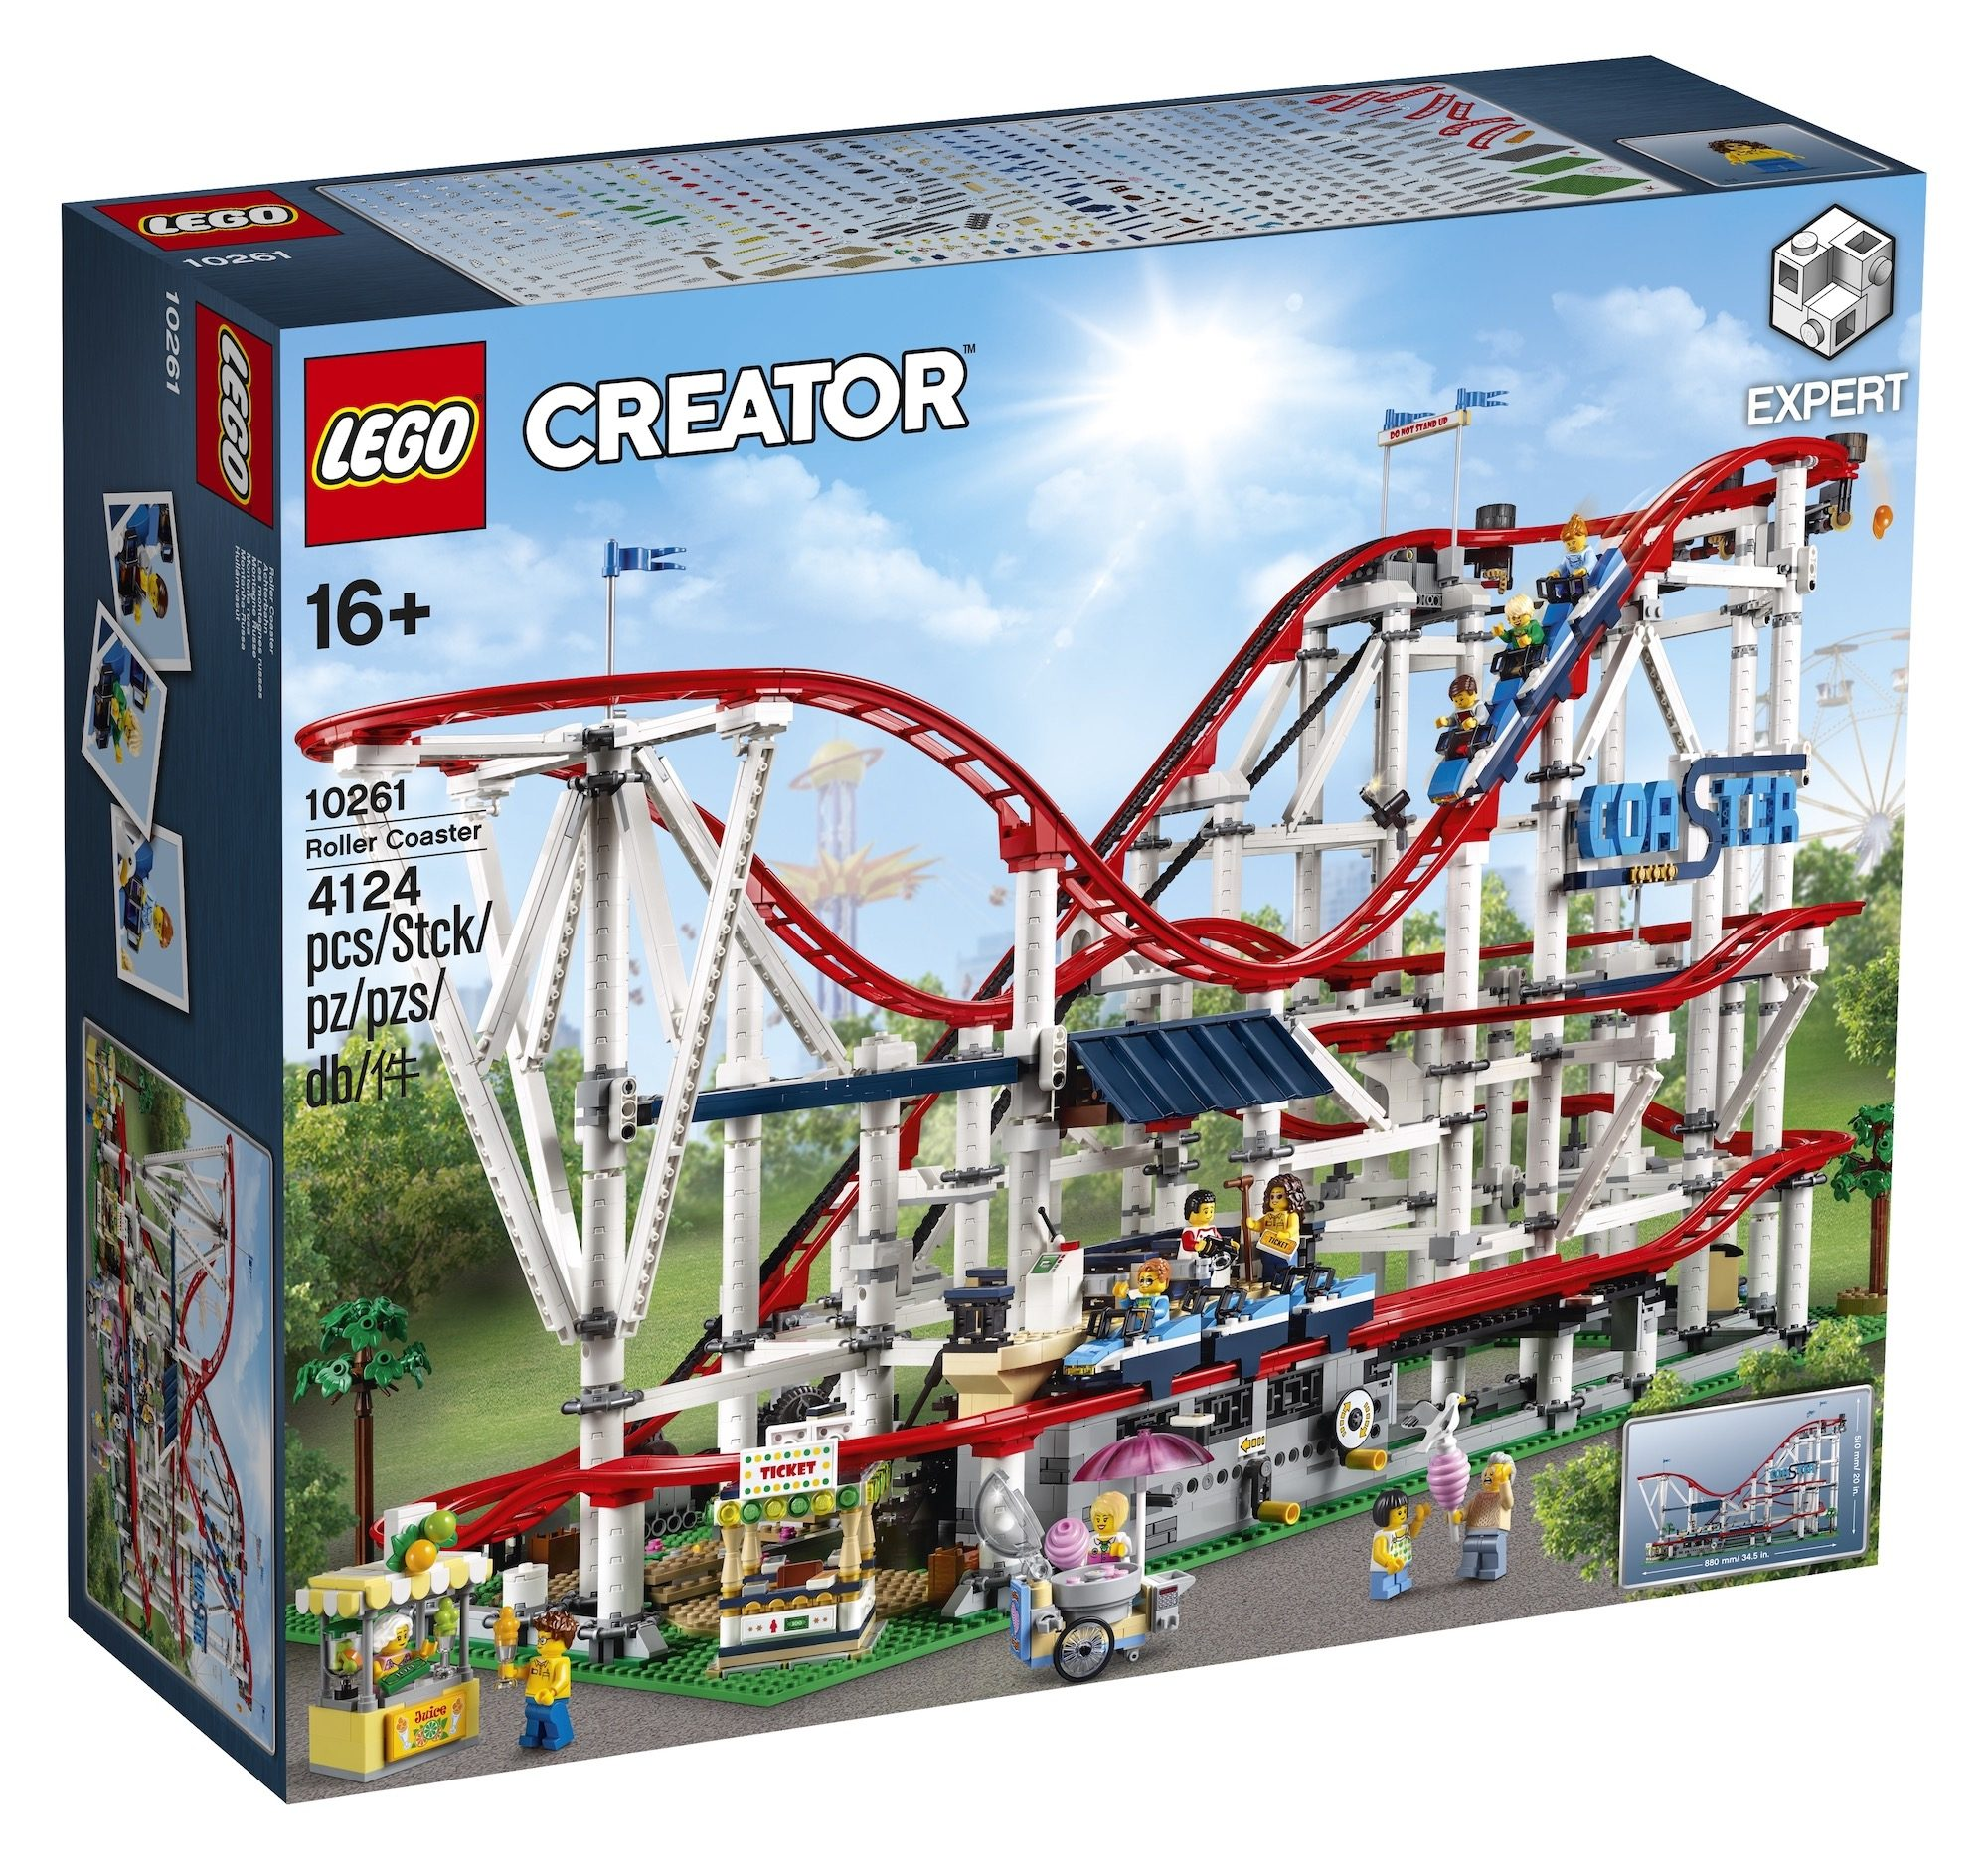 Revealed: Official LEGO Creator Expert Roller Coaster set 10261 [news]